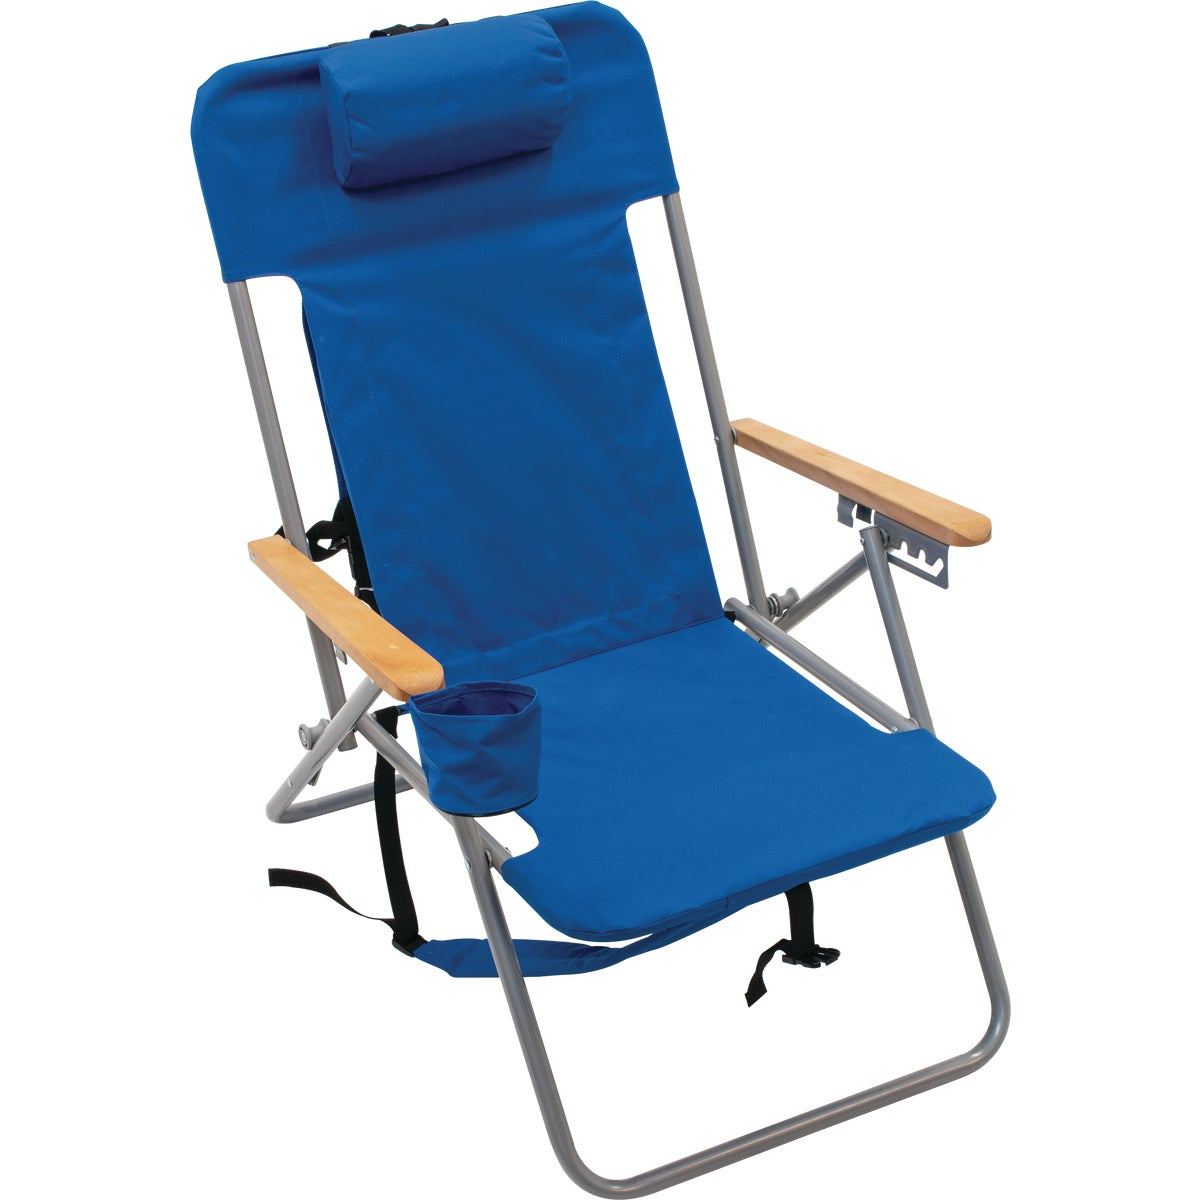 BACKPACK CHAIR - SC527-3250 by Rio Brands  Ningbo1